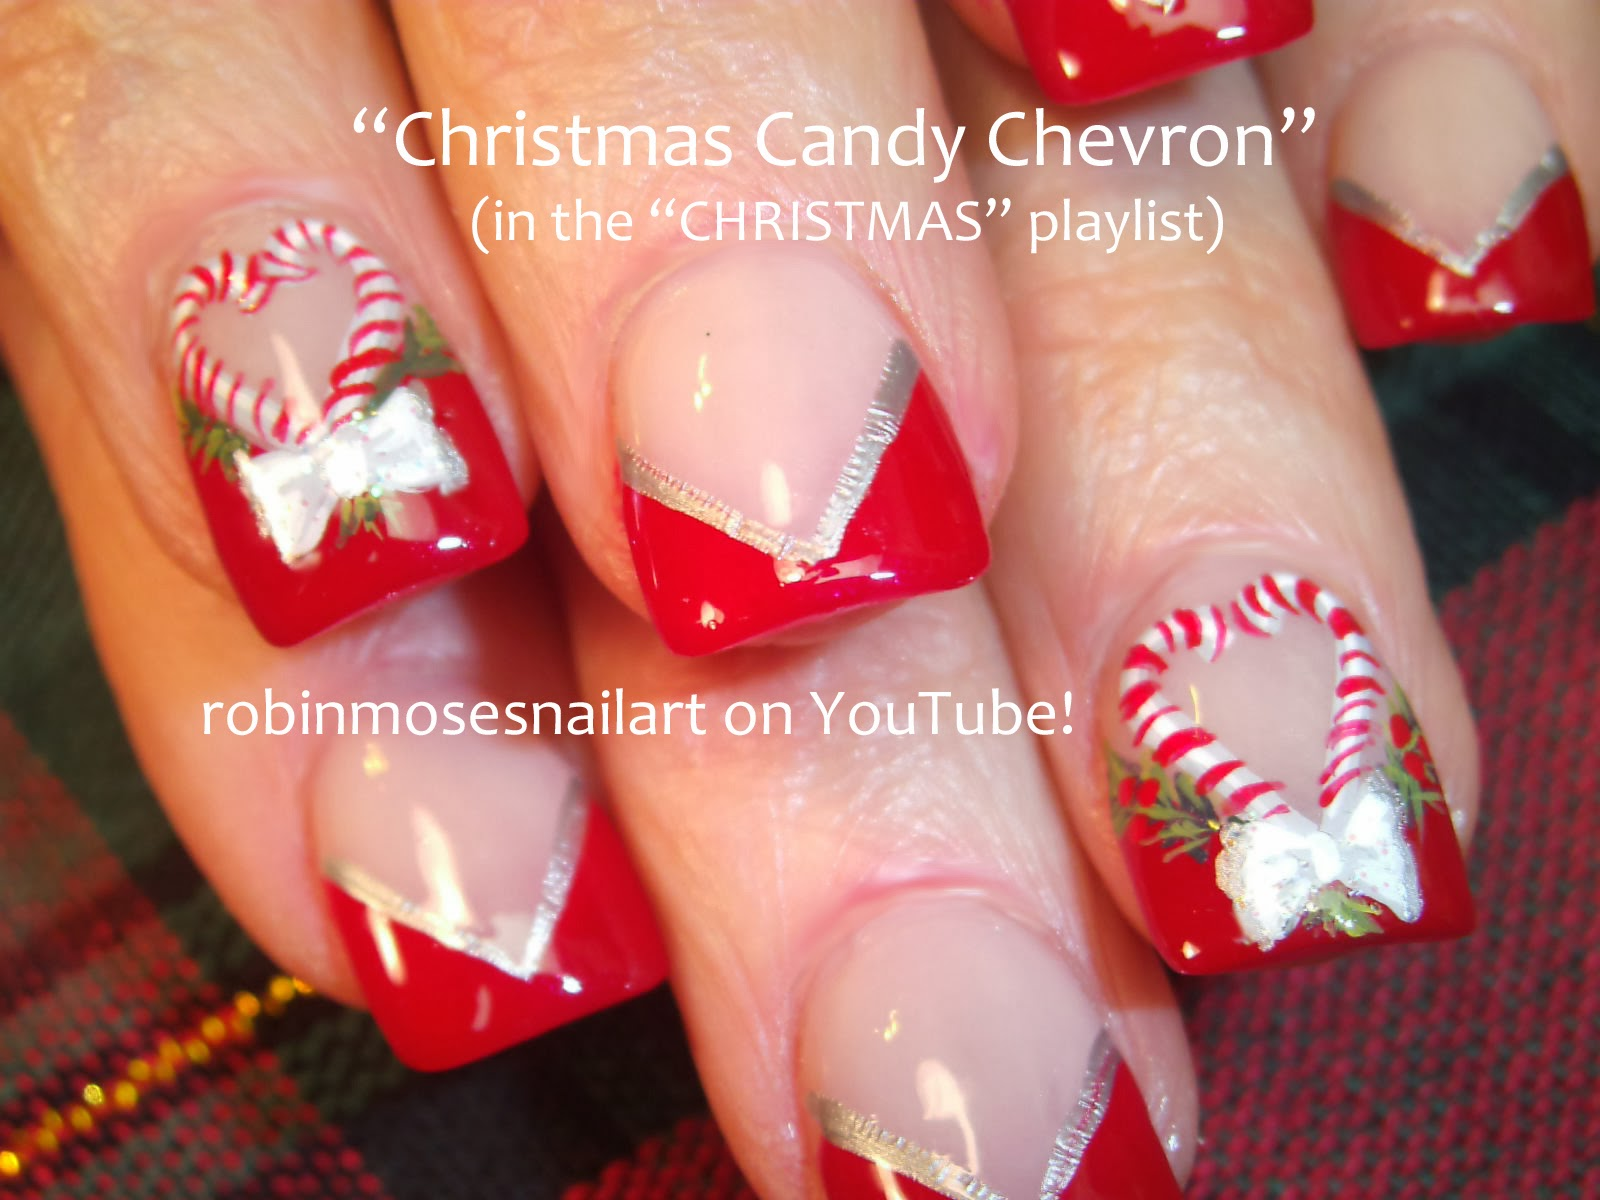 Robin moses nail art nail art christmas nail art sexy santa nail art christmas nail art sexy santa best christmas nail art cutest christmas nails cutest christmas ideas christmas nail designs best prinsesfo Choice Image